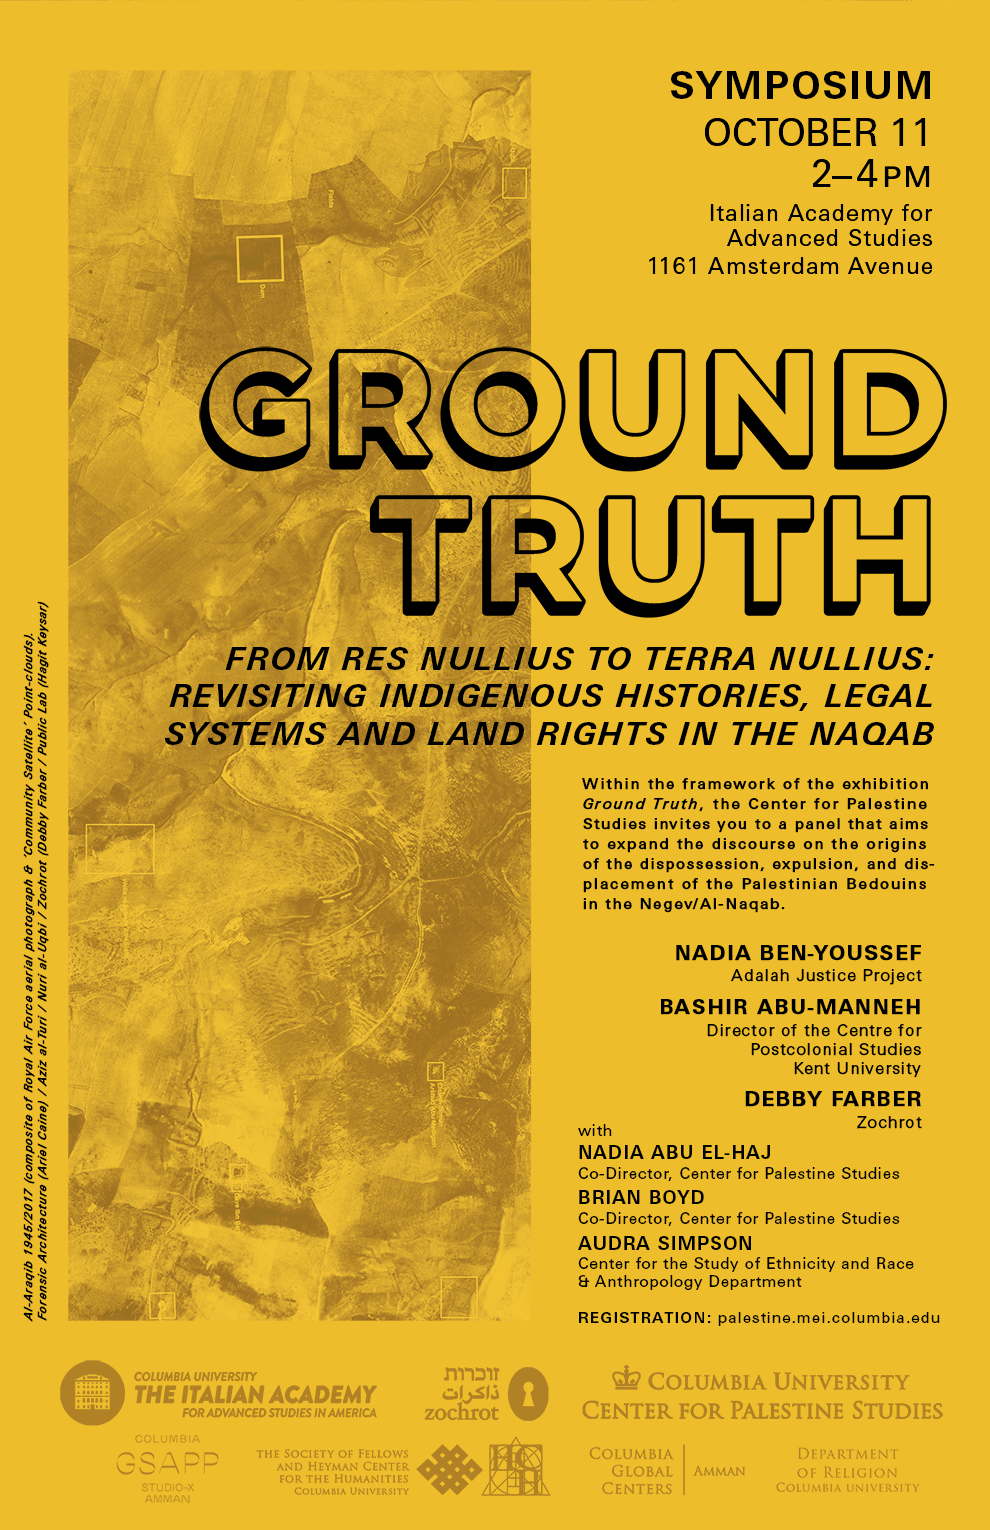 Ground Truth_Symposium.png